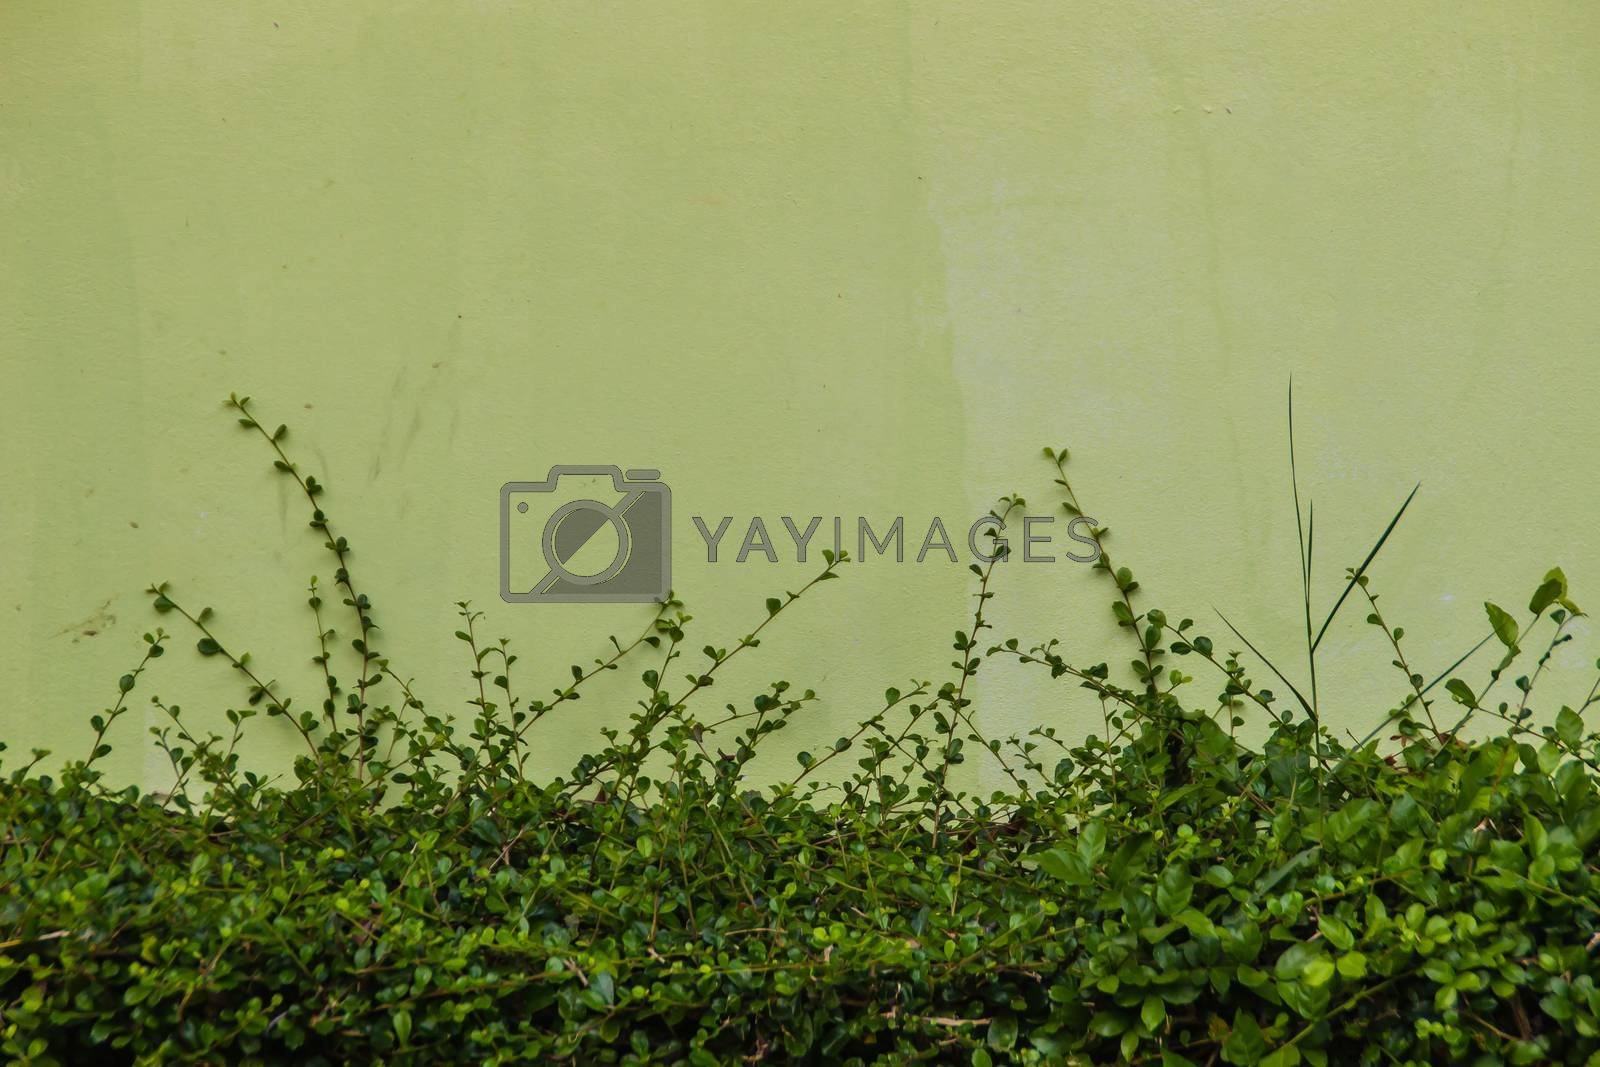 Green painted wall copy space with green vine leaves background. Green leafs on green painted wall with copy space for text.